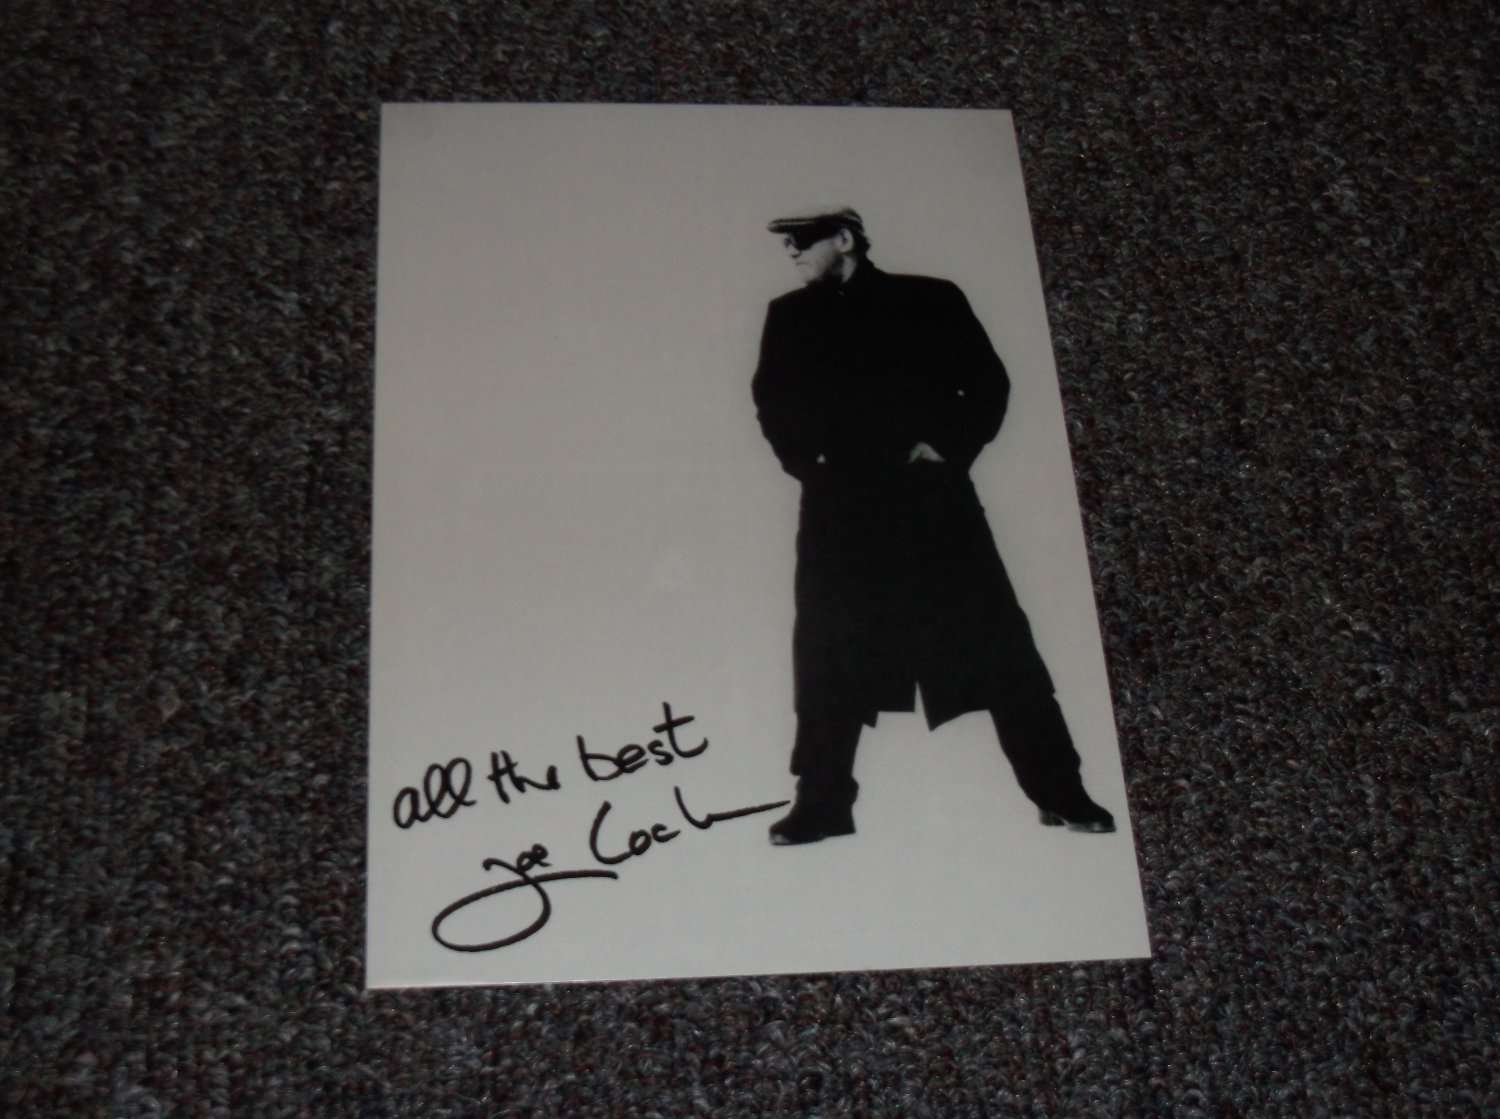 Joe Cocker signed reprint 5x7 photo